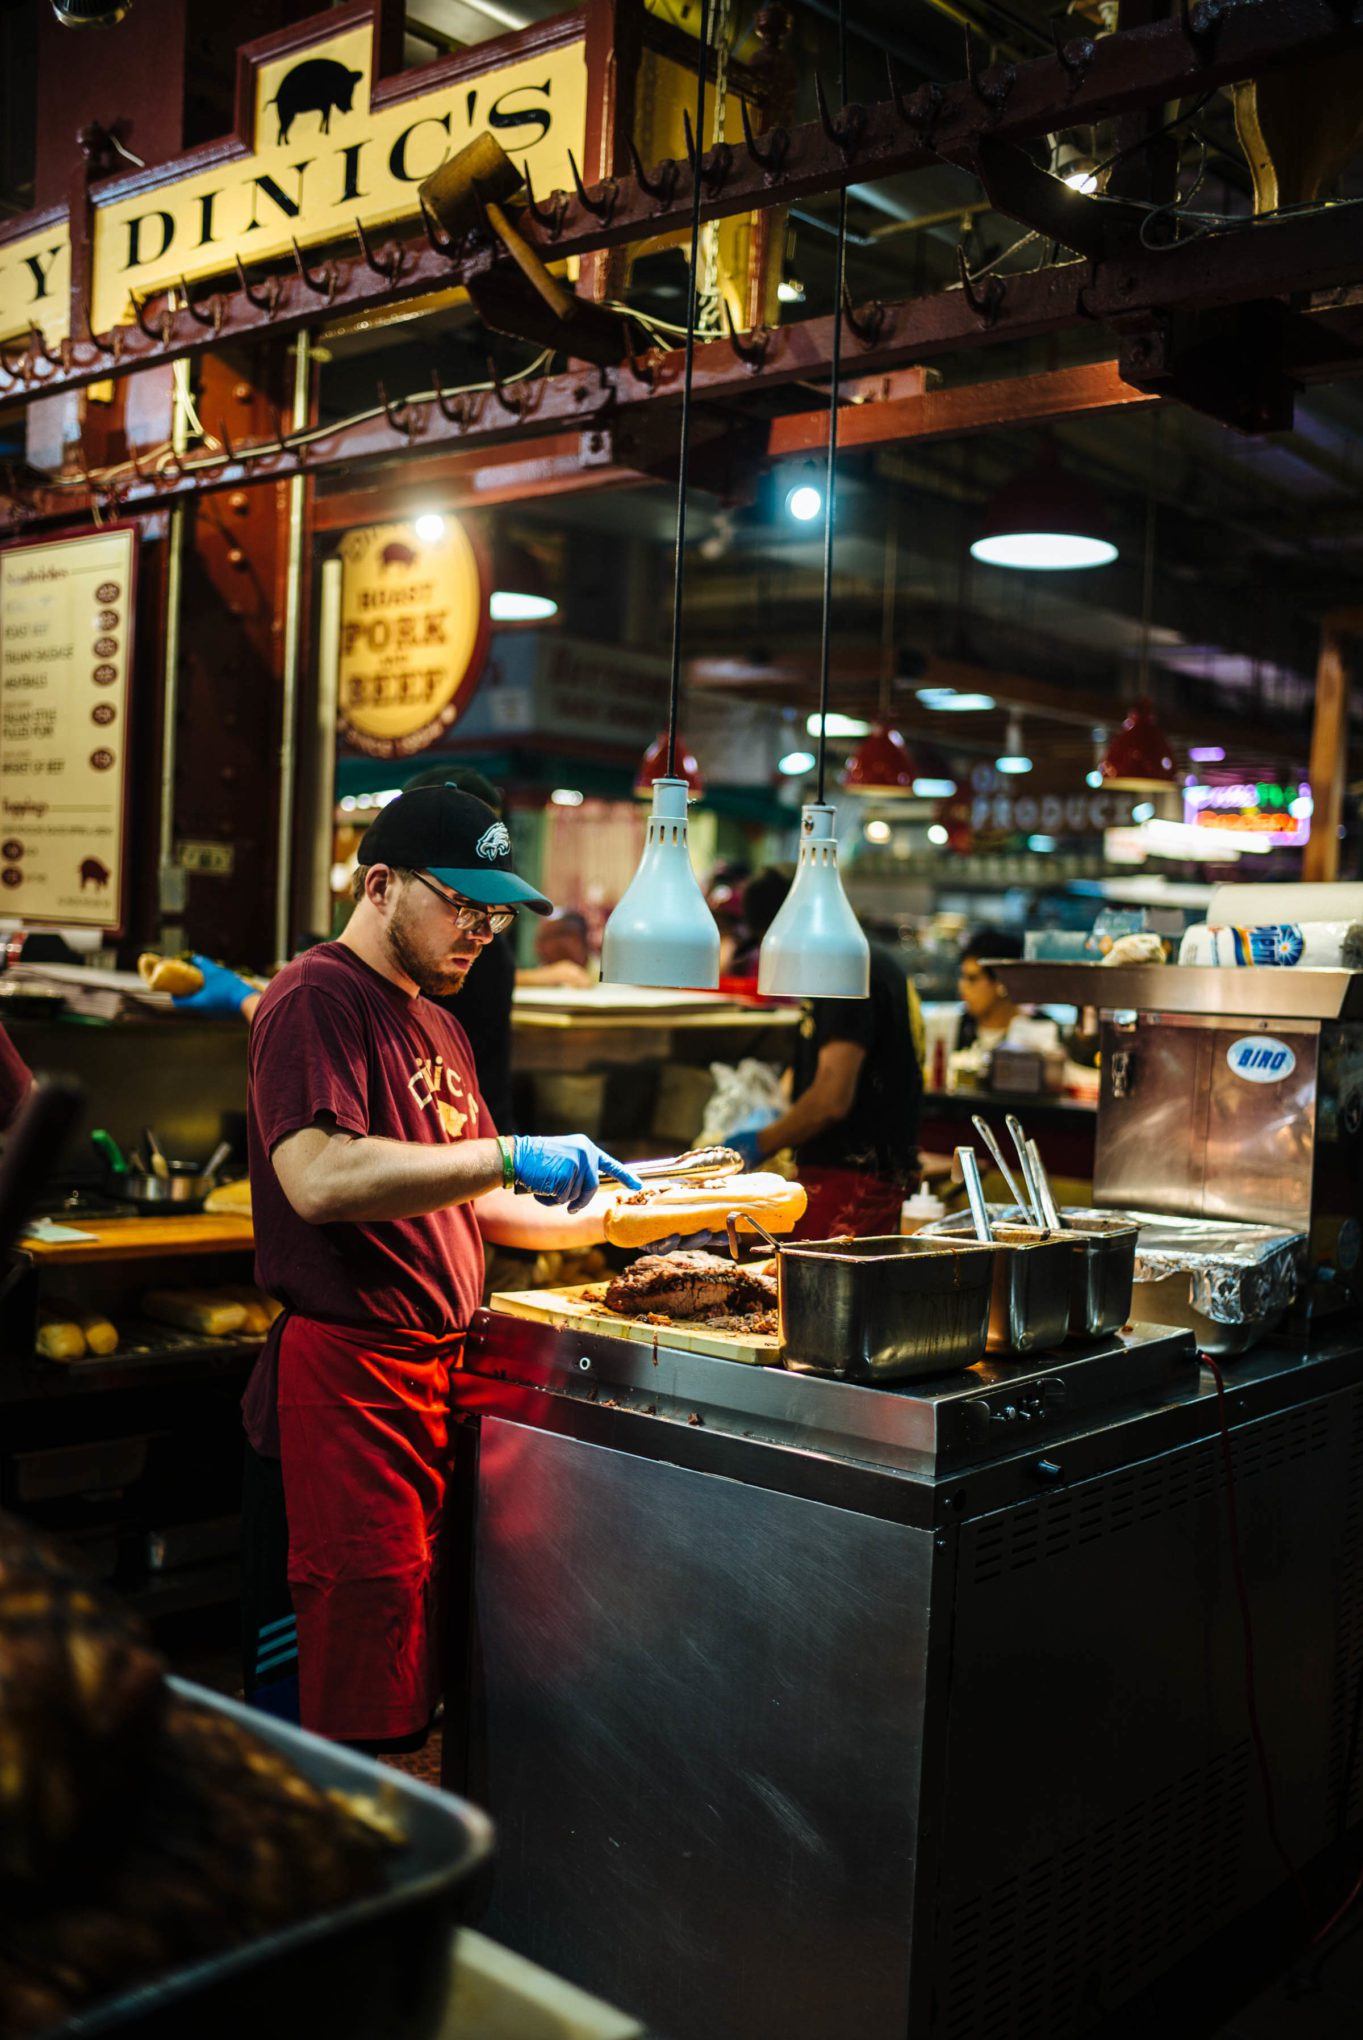 Visit Philadelphia for the best food and historical sites. You must visit the Reading Terminal Market for some of the best food in Philly in one place. #thetasteedit #travel #philadelphia #market #food #sandiwch #pork